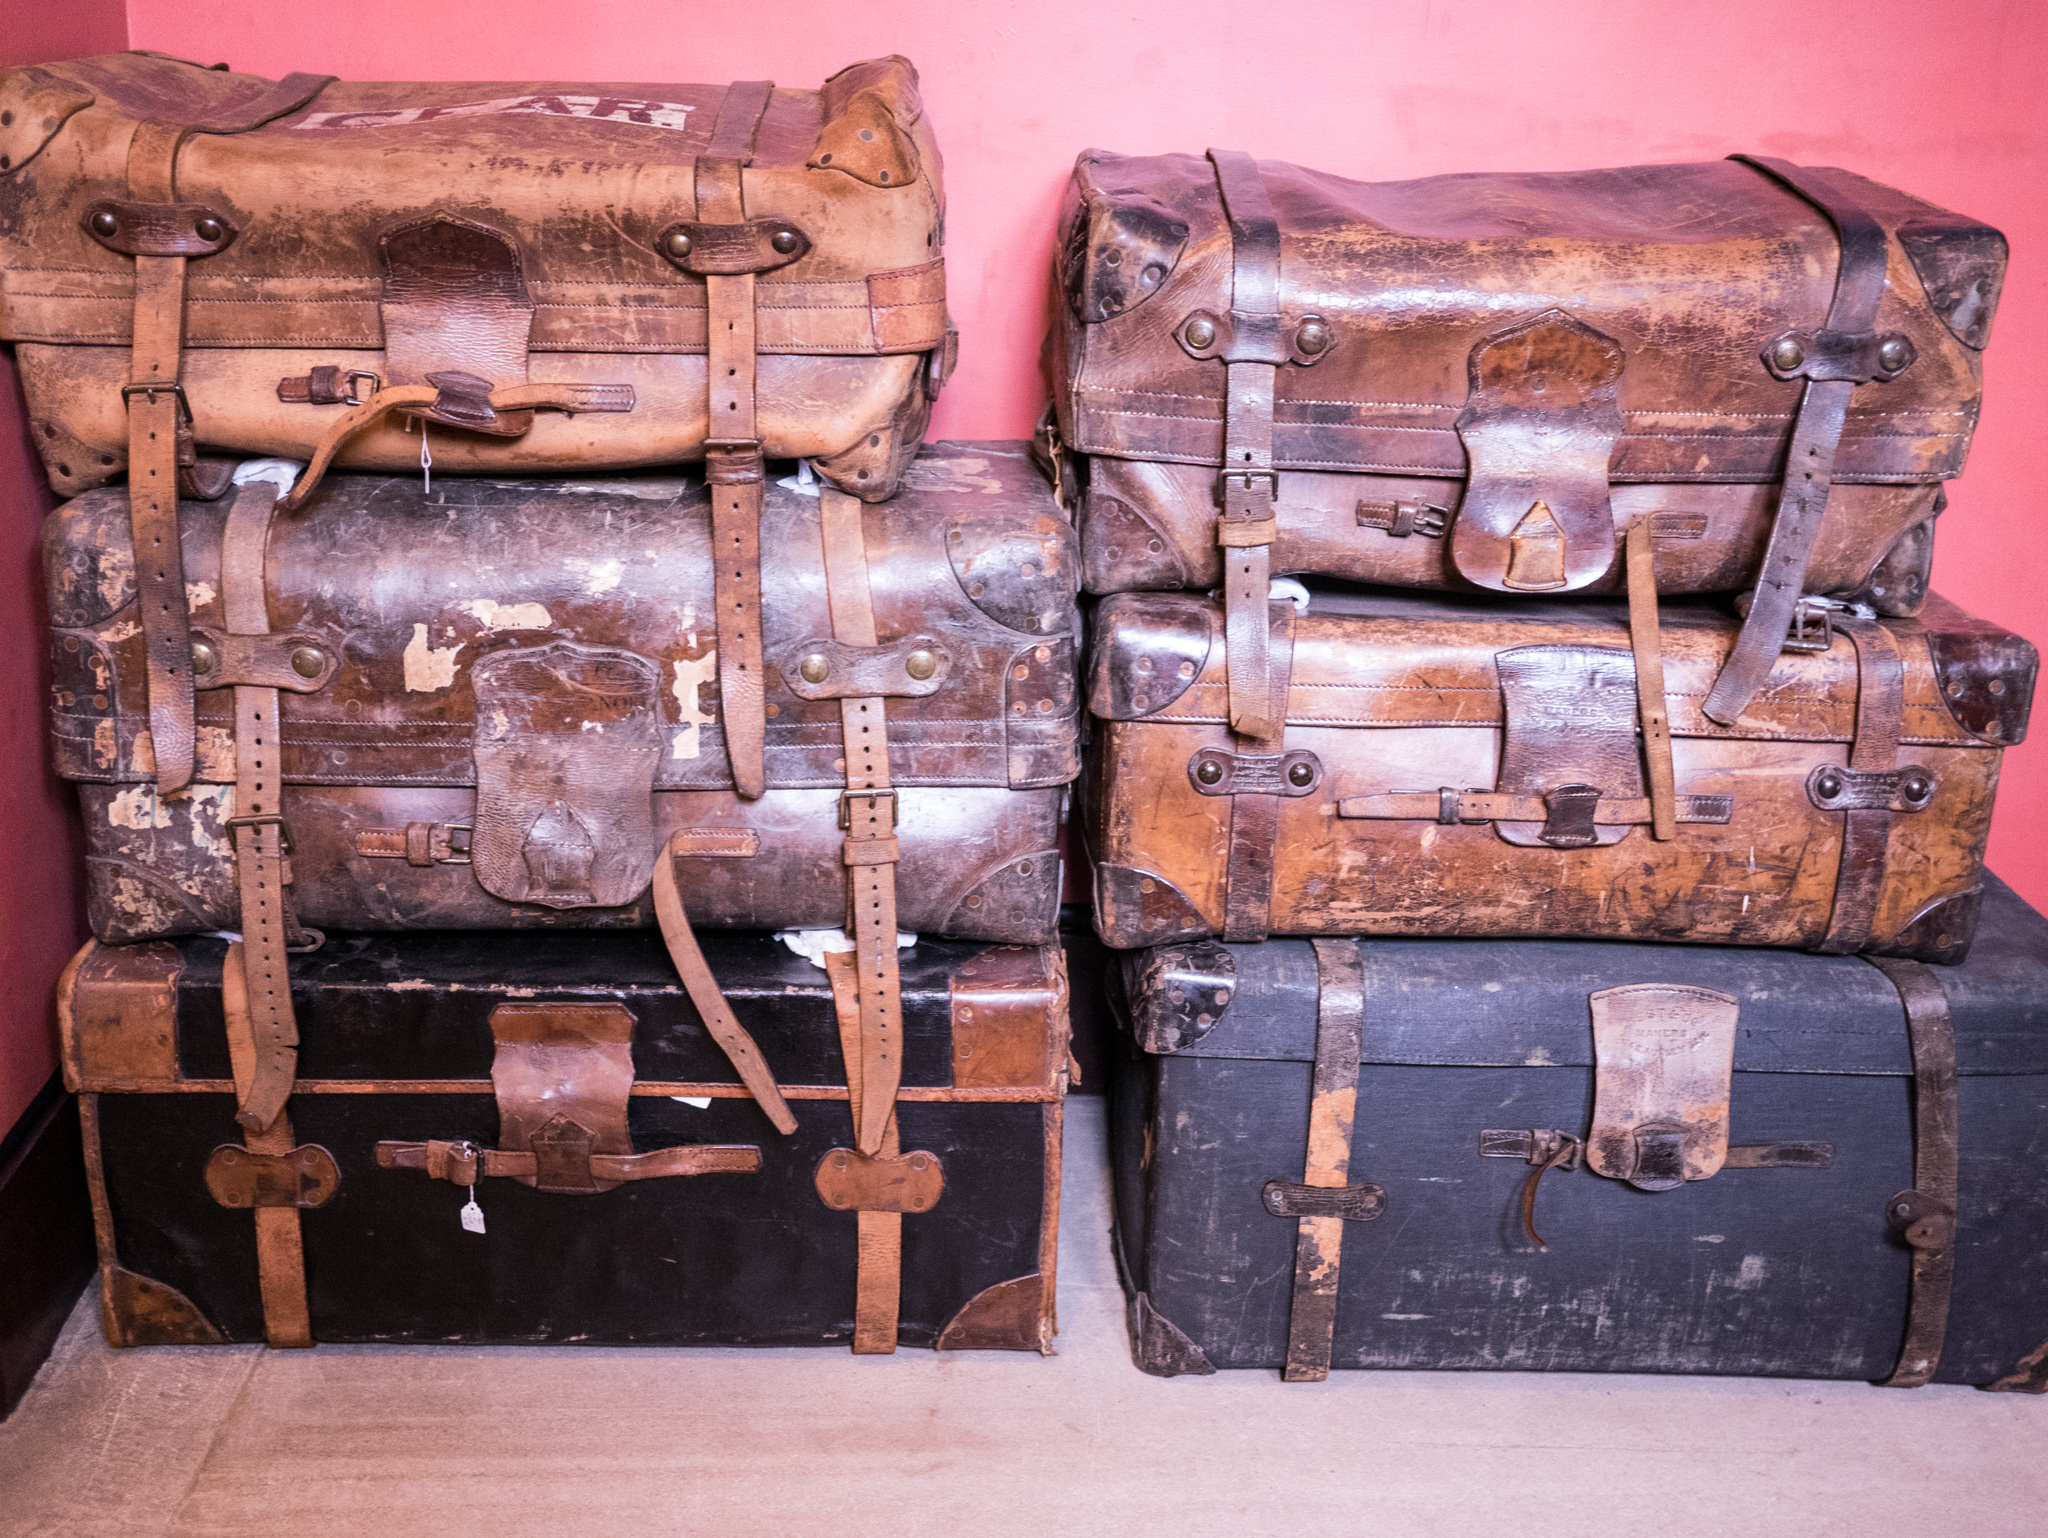 Vintage suitcases - planning emigrating